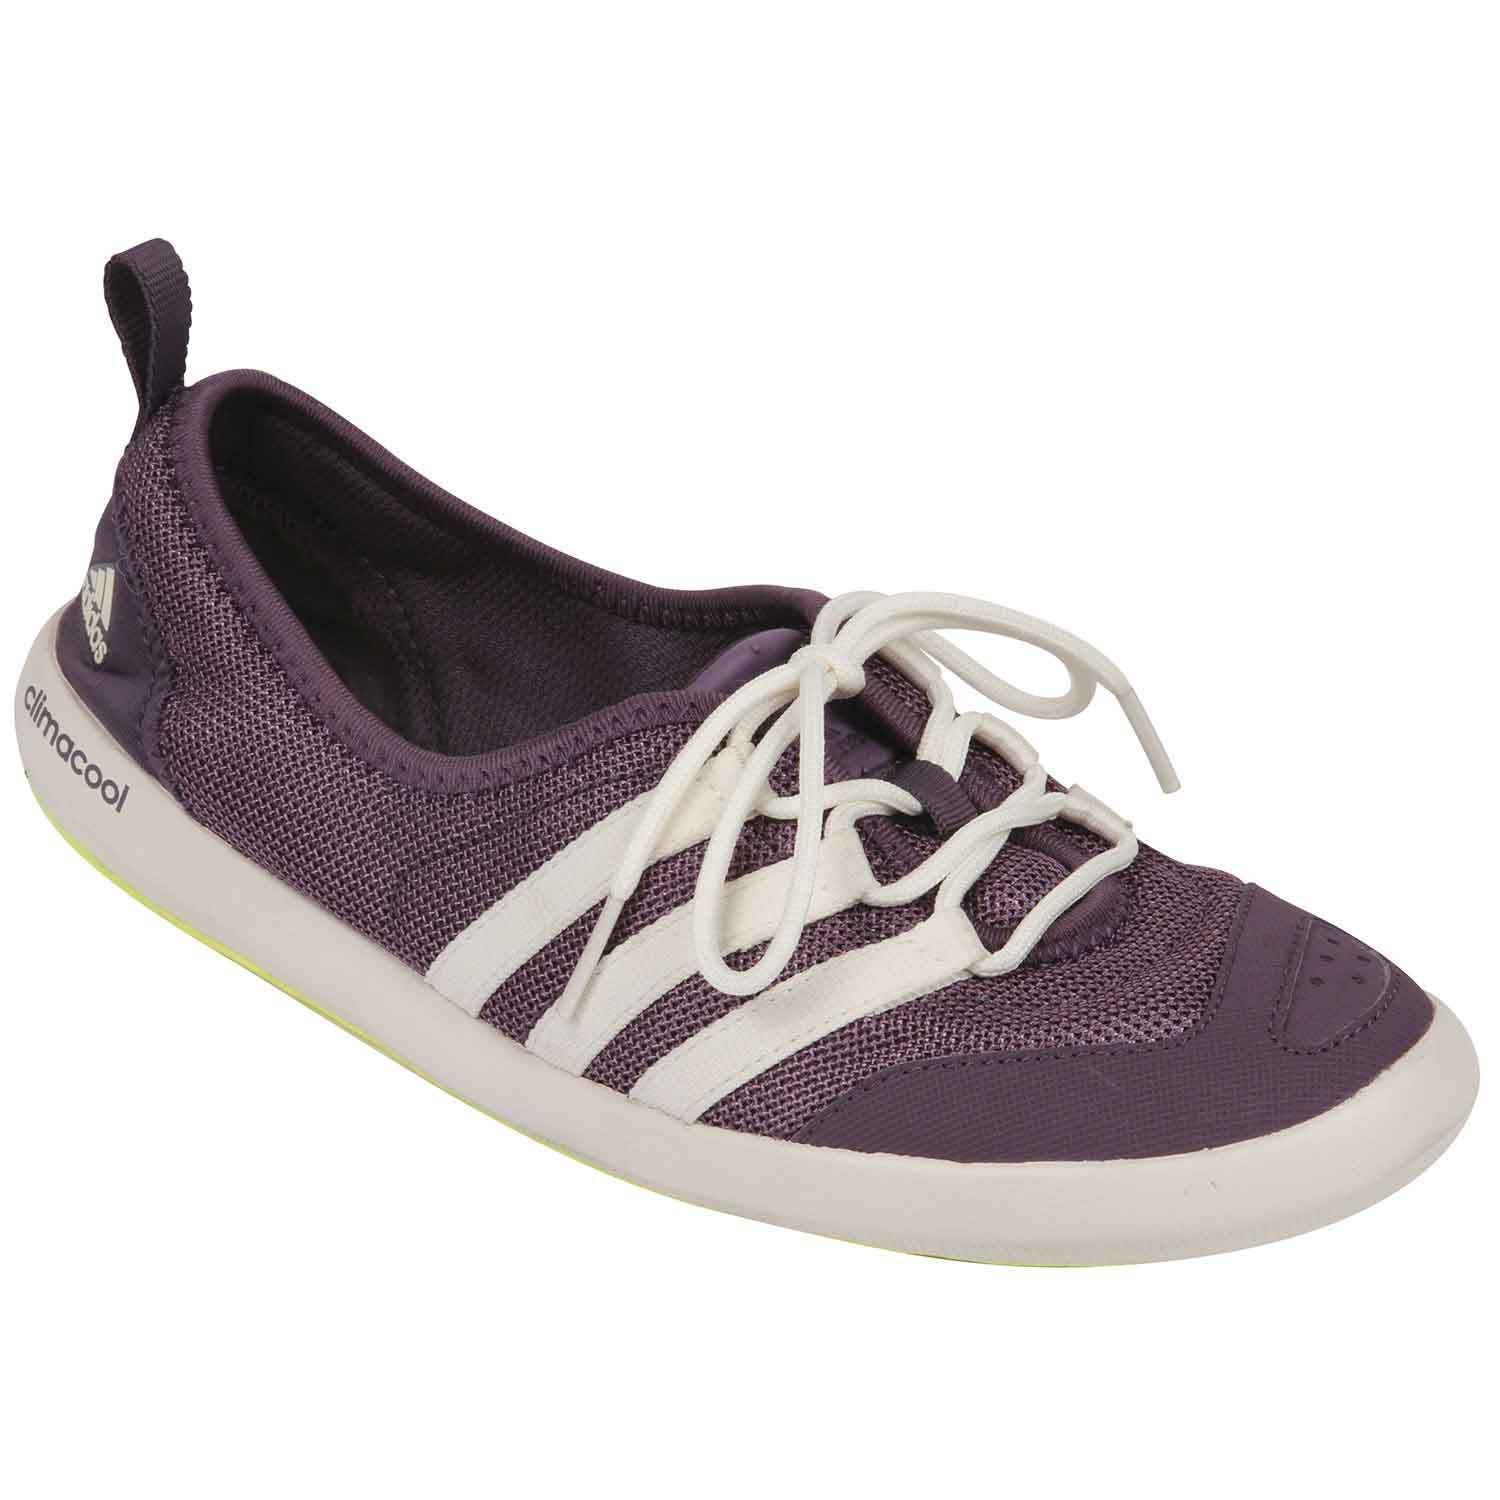 outlet store 22764 b7b74 Women's Climacool Boat Sleek Shoes